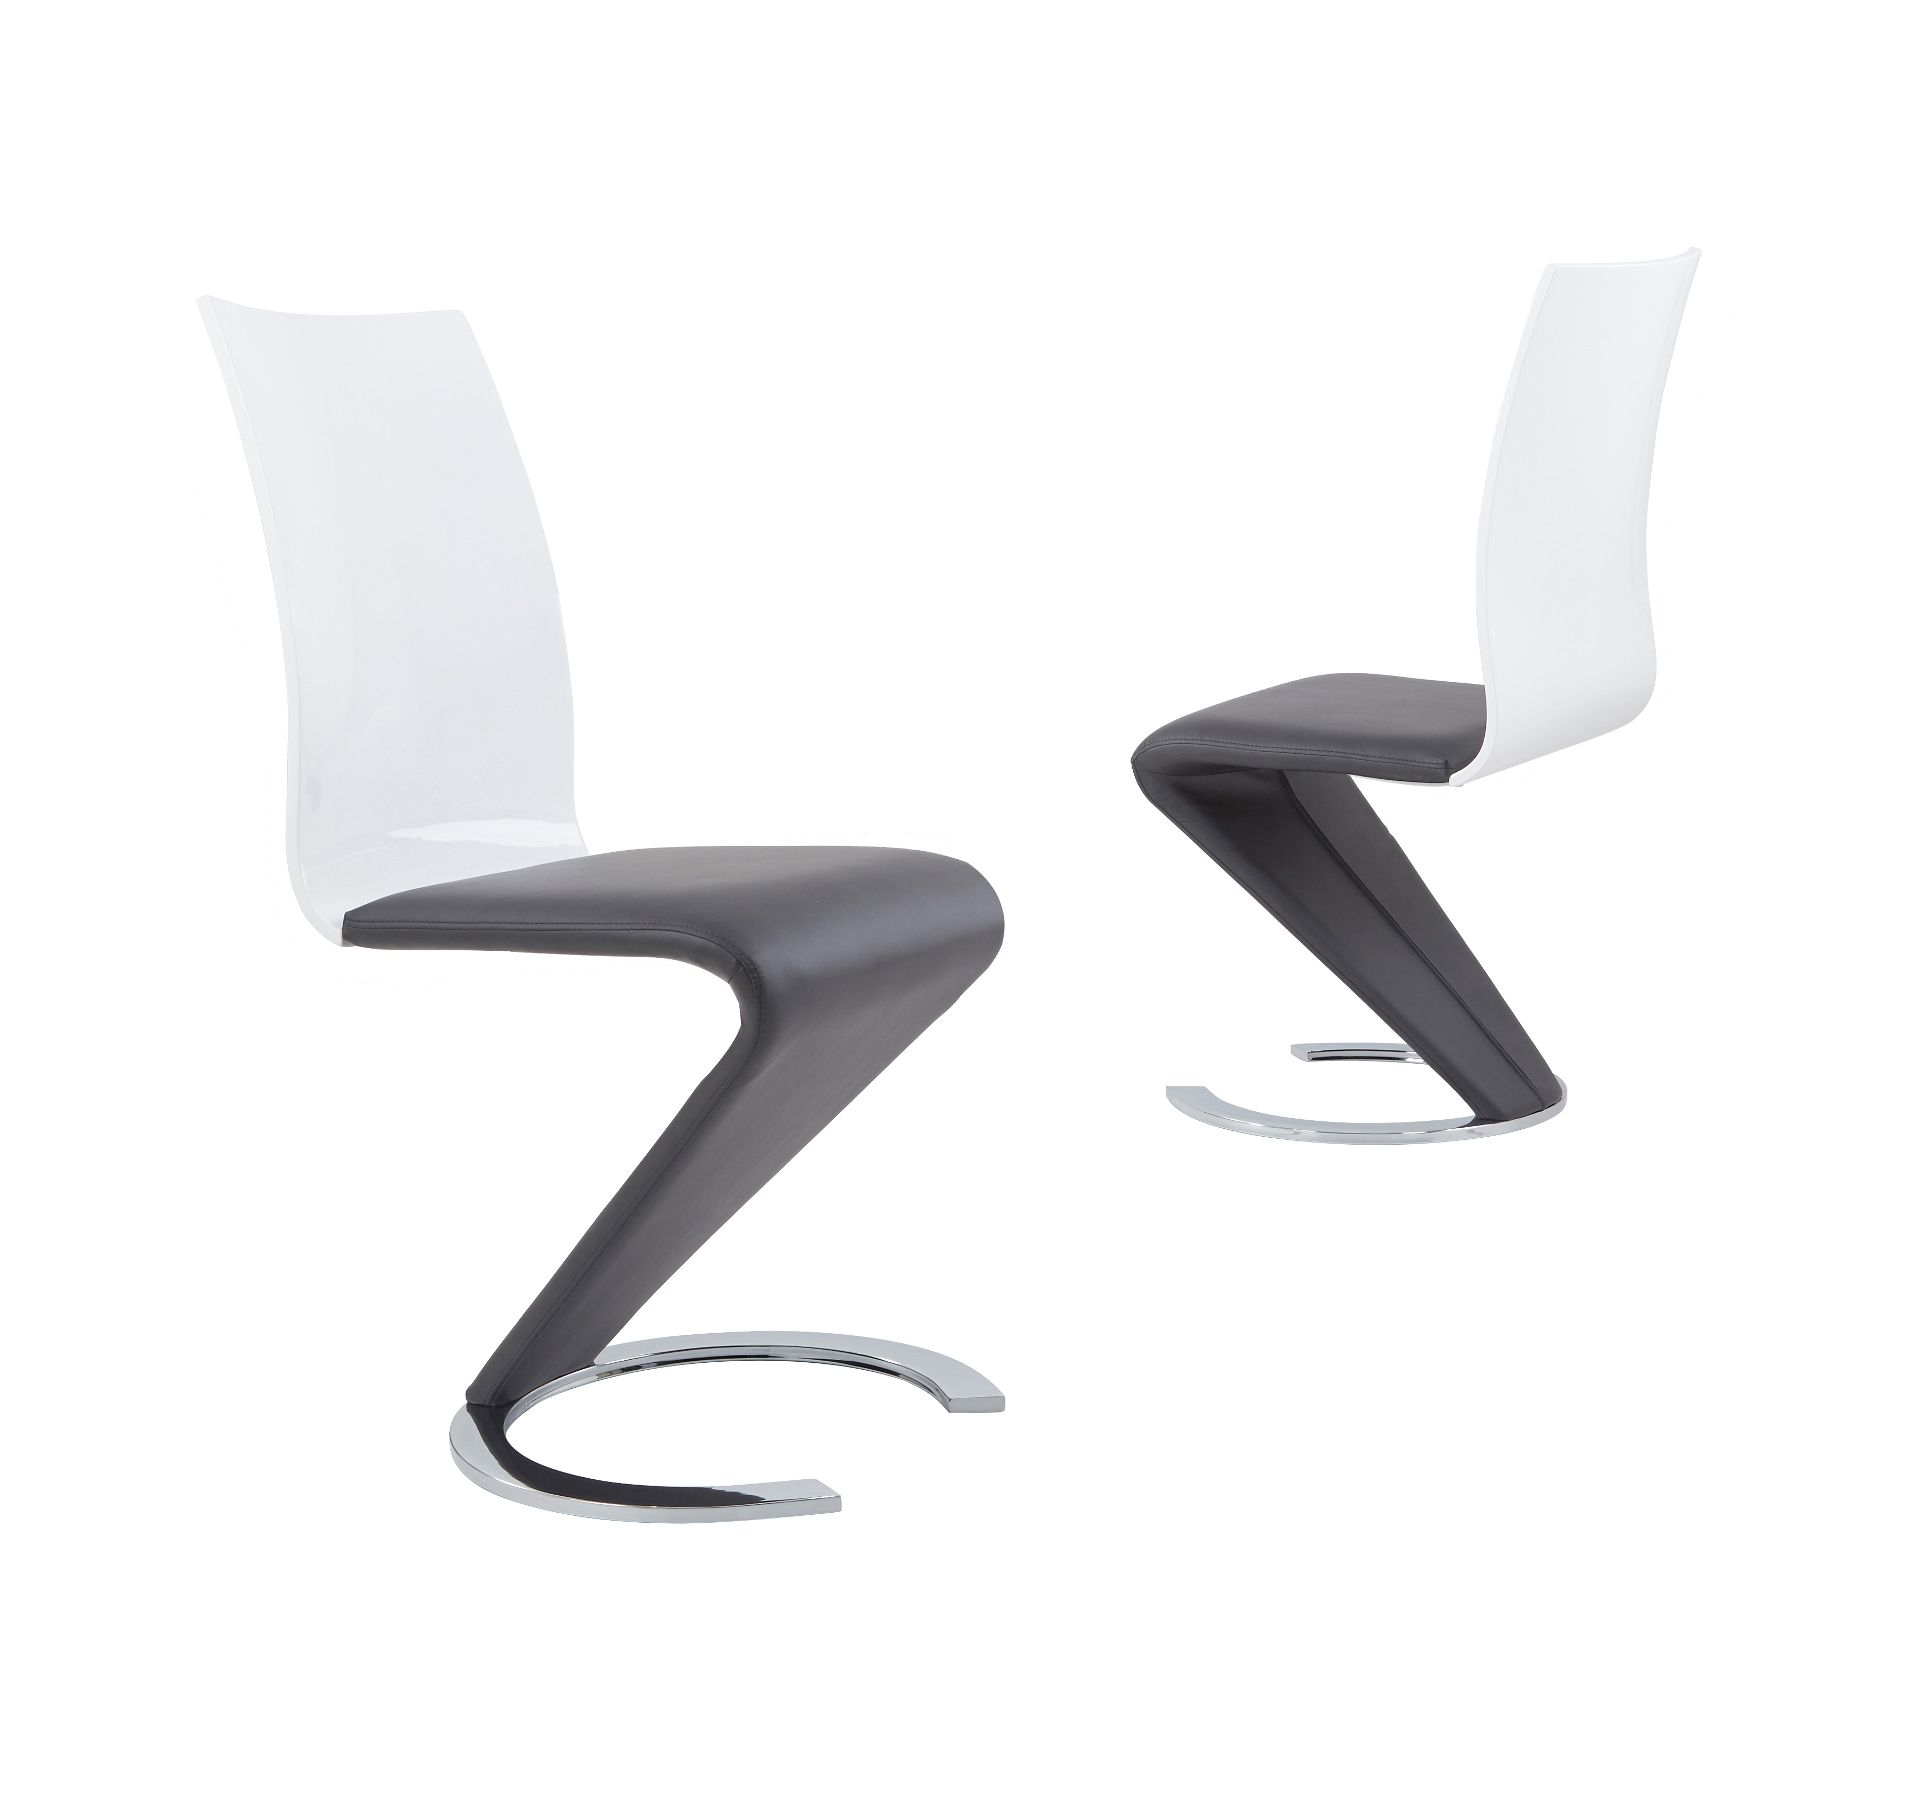 Groovy K2 Grey White Small Or Large Extending Table Swish Chairs Dailytribune Chair Design For Home Dailytribuneorg